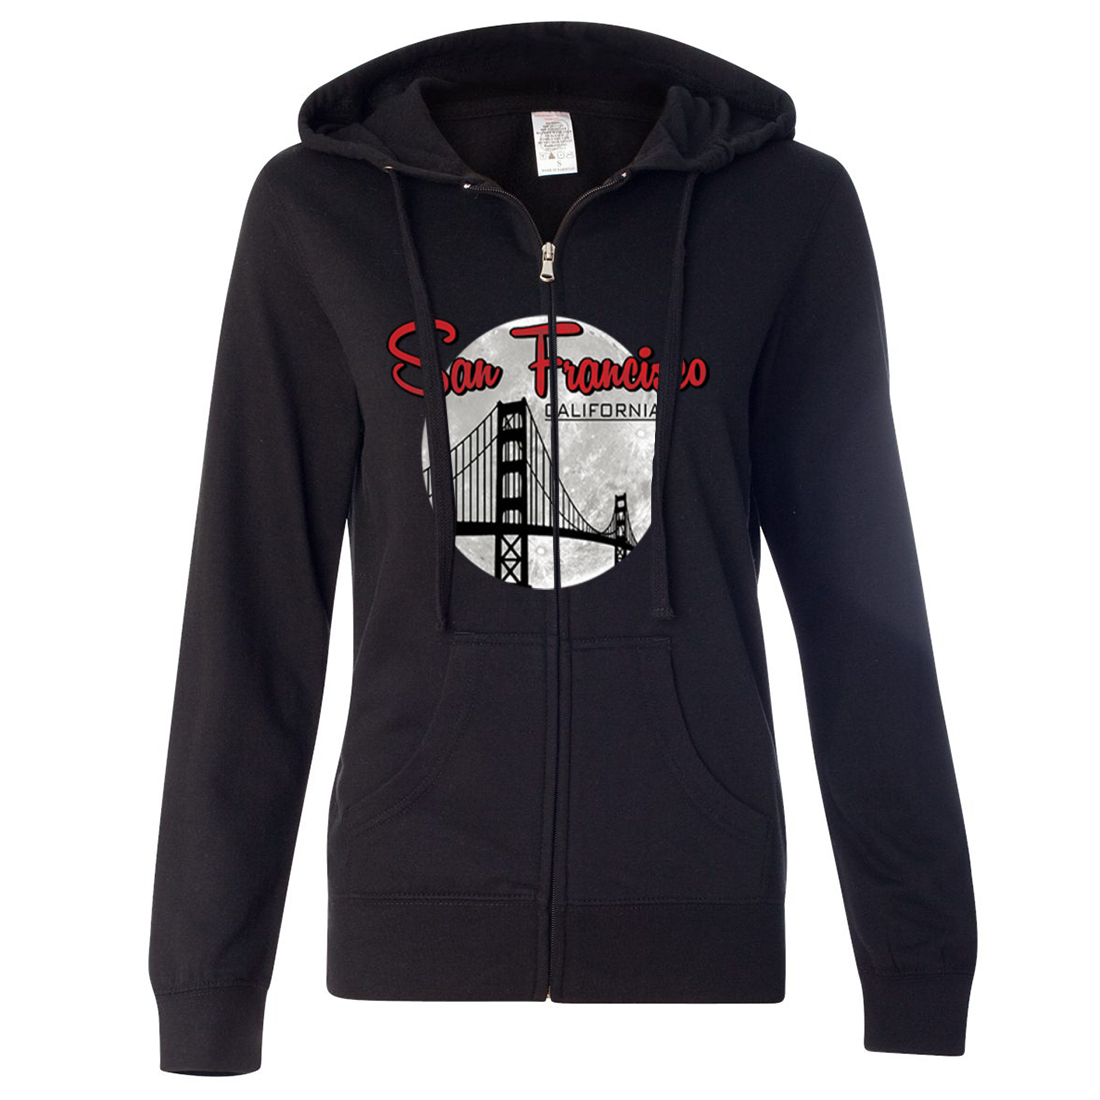 San Francisco California Moon Ladies Lightweight Fitted Zip-Up Hoodie